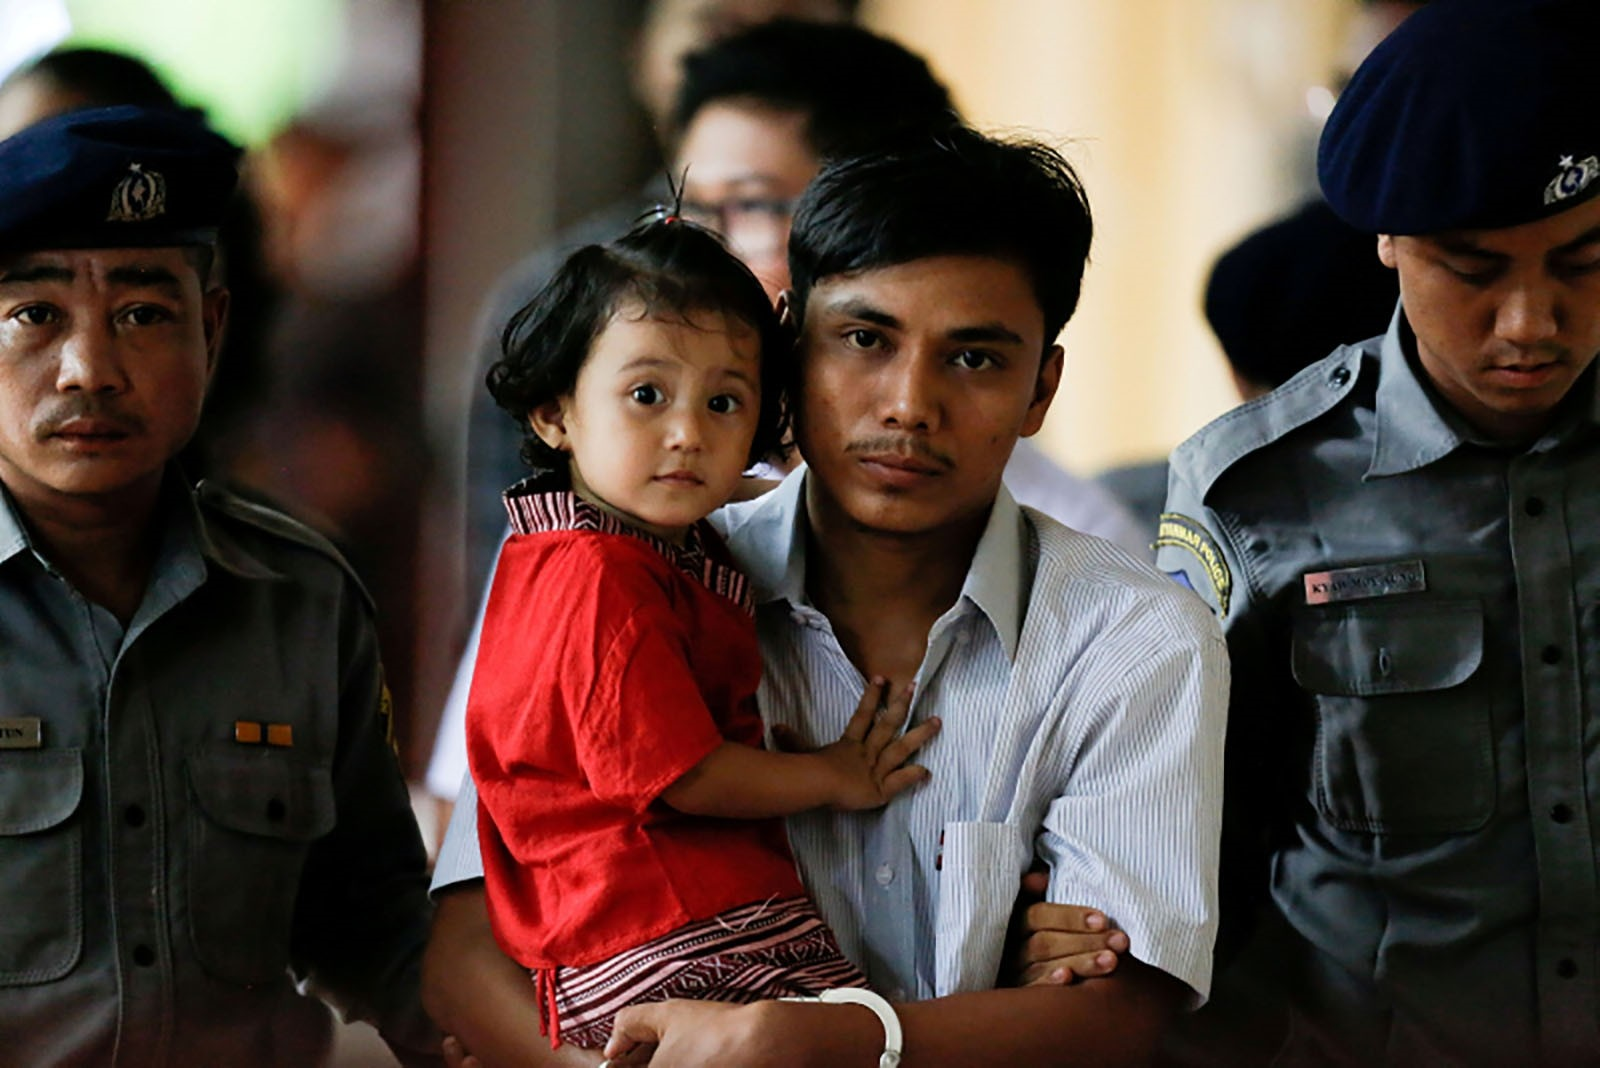 Detained Reuters journalist Kyaw Soe Oo carries his daughter Moe Thin Wai Zin while escorted by police during a court hearing in Yangon, Myanmar, June 5, 2018.